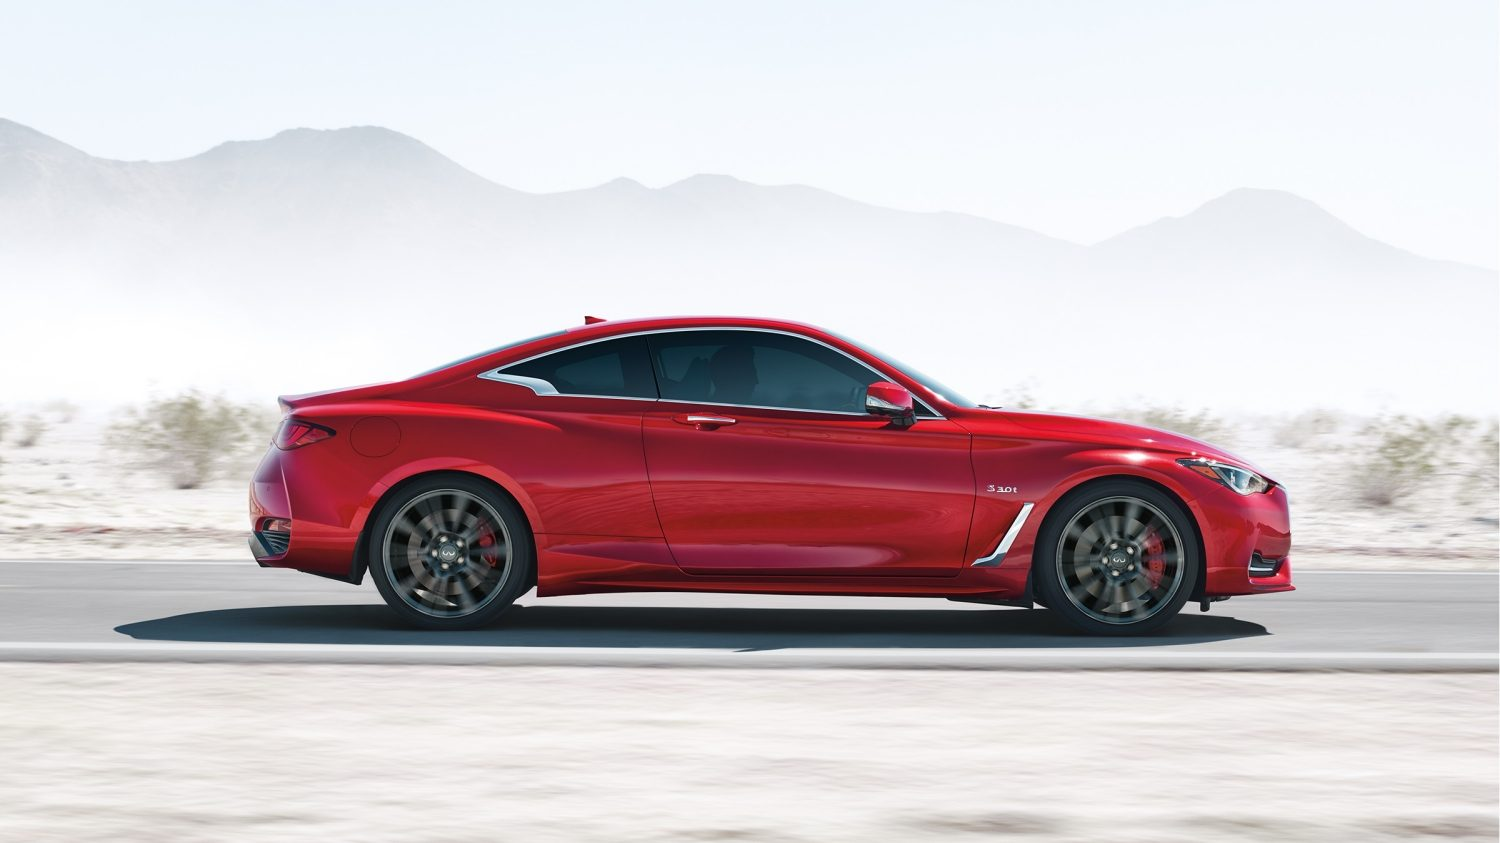 2018 INFINITI Q60 Red Sport 400 Performance Sports Coupe | Design and Artistry